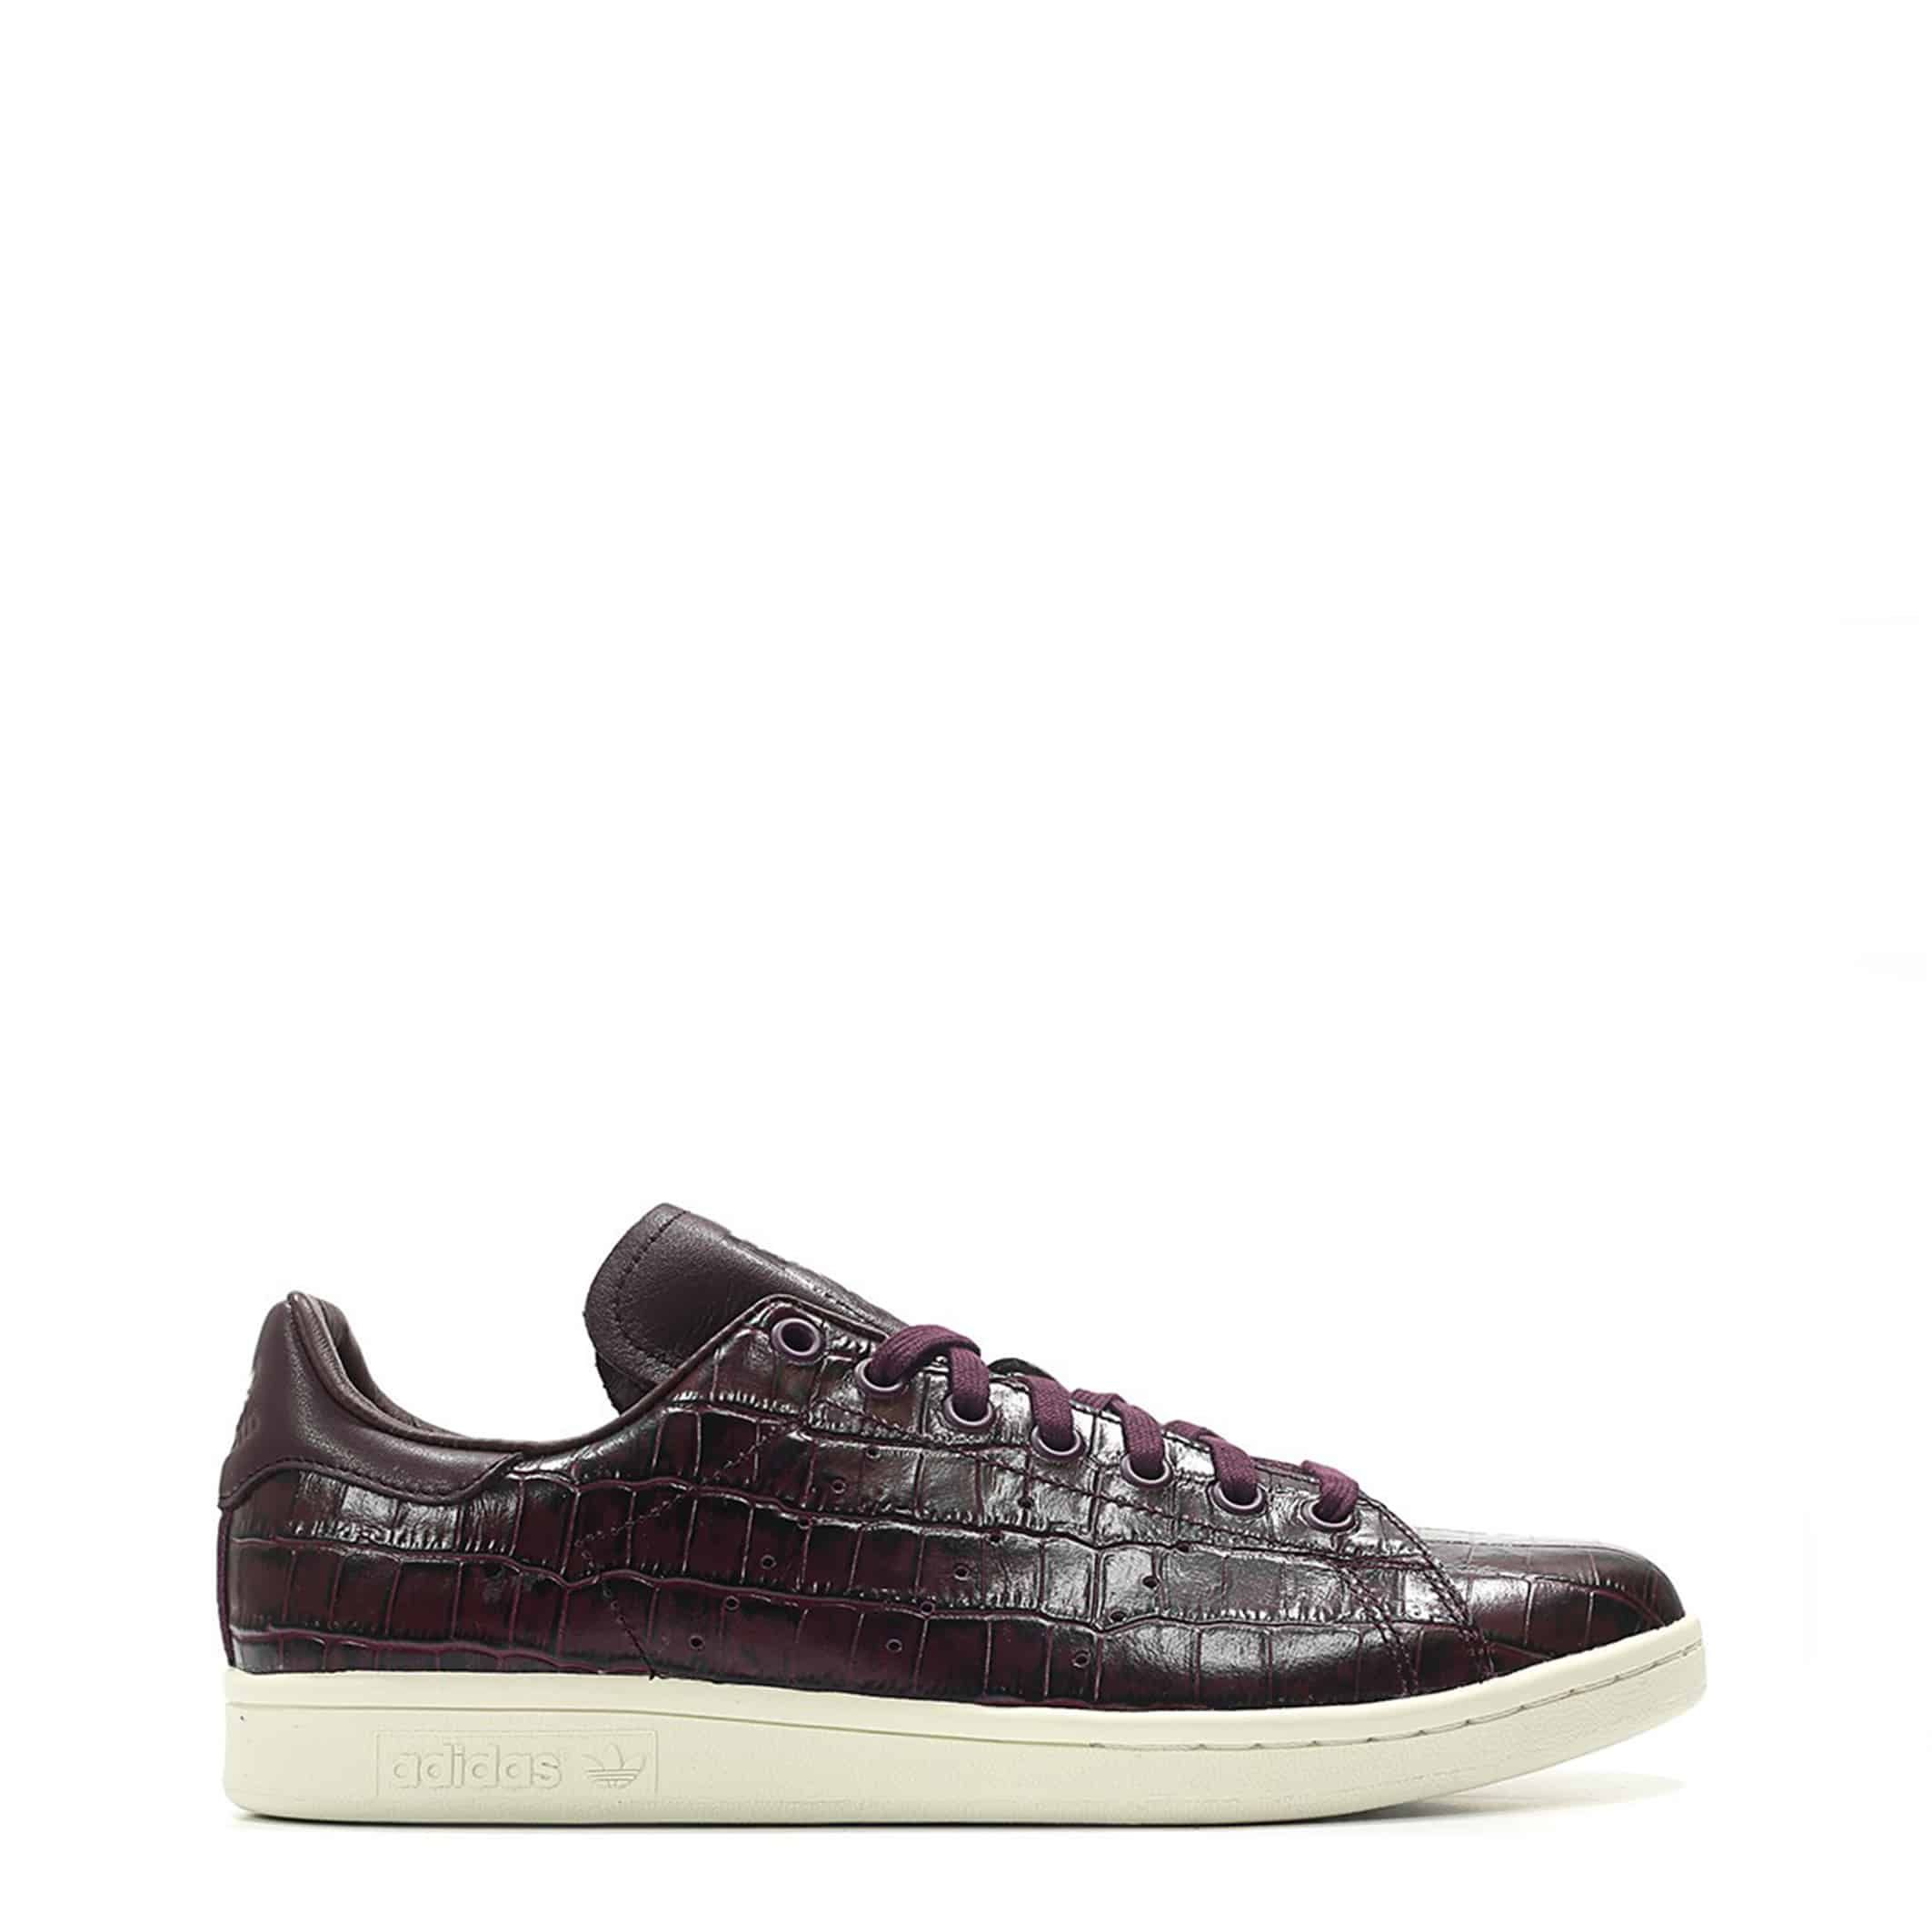 Adidas – StanSmith – Violet